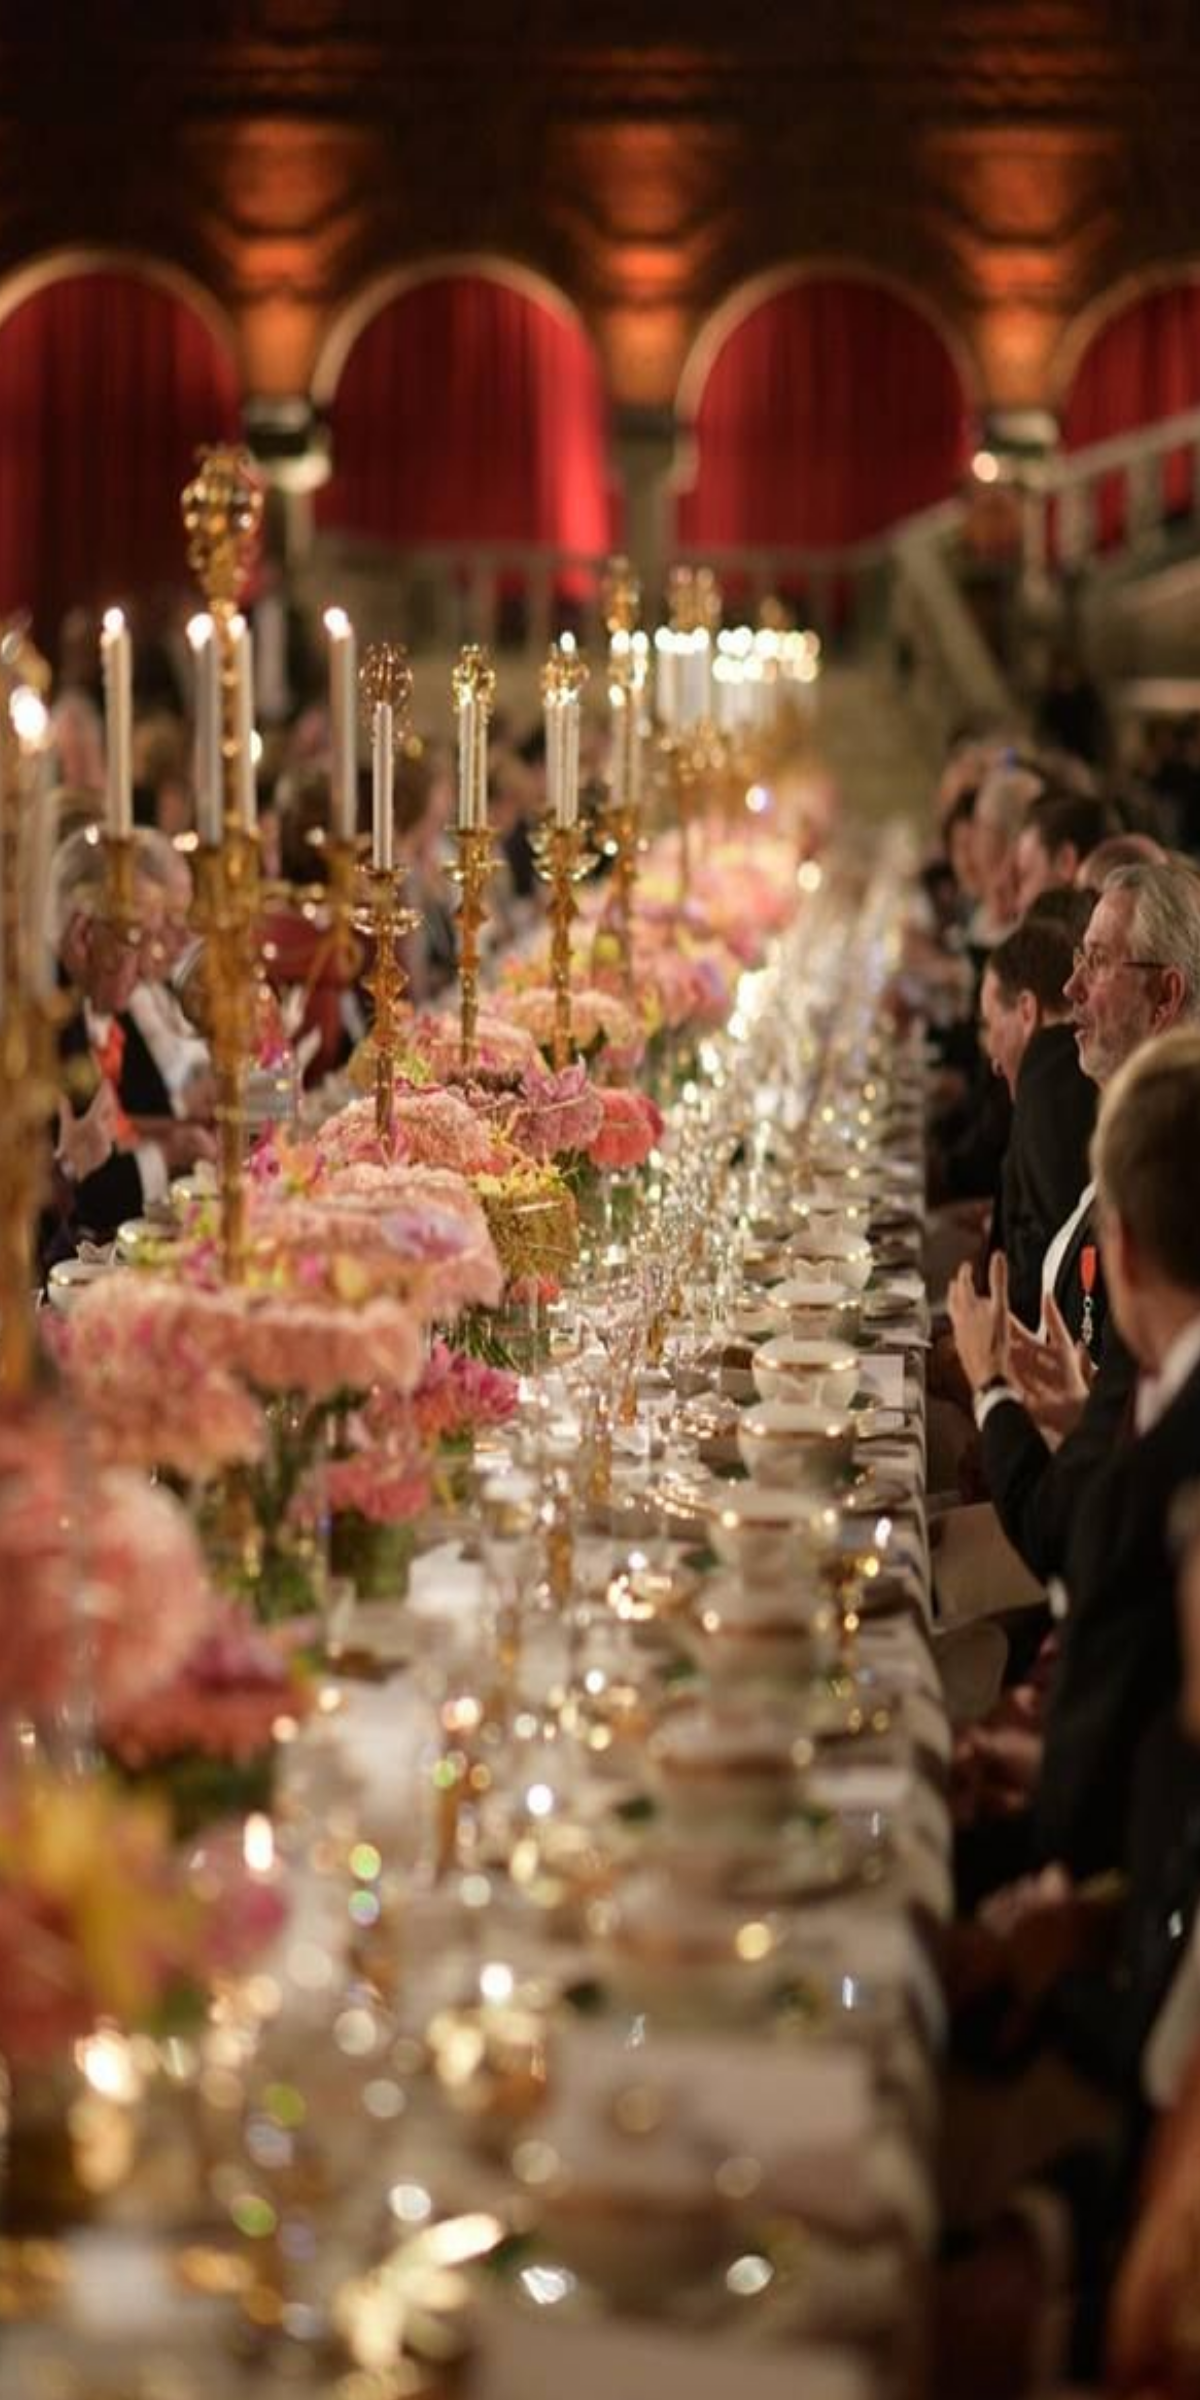 black tie elegance wedding ideas table decor gala dinner rh pinterest com